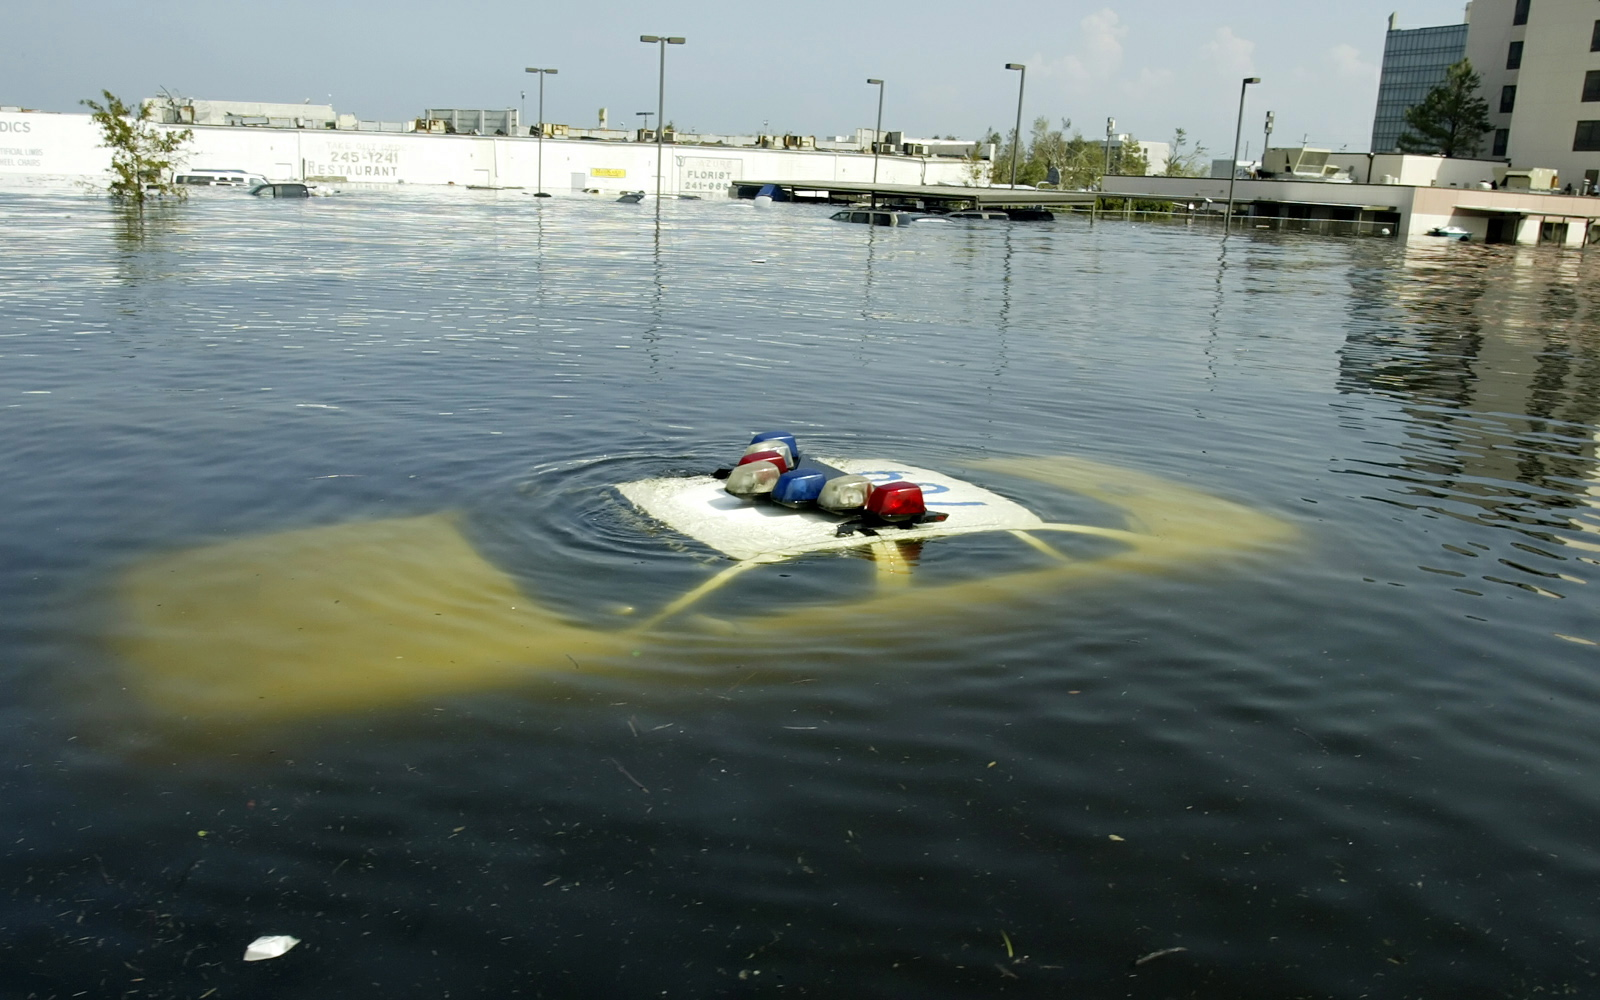 A police car is submerged in New Orleans East August 31, 2005 after Hurricane Katrina hit the area. Authorities struggled on Wednesday to evacuate thousands of people from hurricane-battered New Orleans as food and water grew scarce and looters raided stores, [while U.S. President George W. Bush said it would take years to recover from the devastation.]